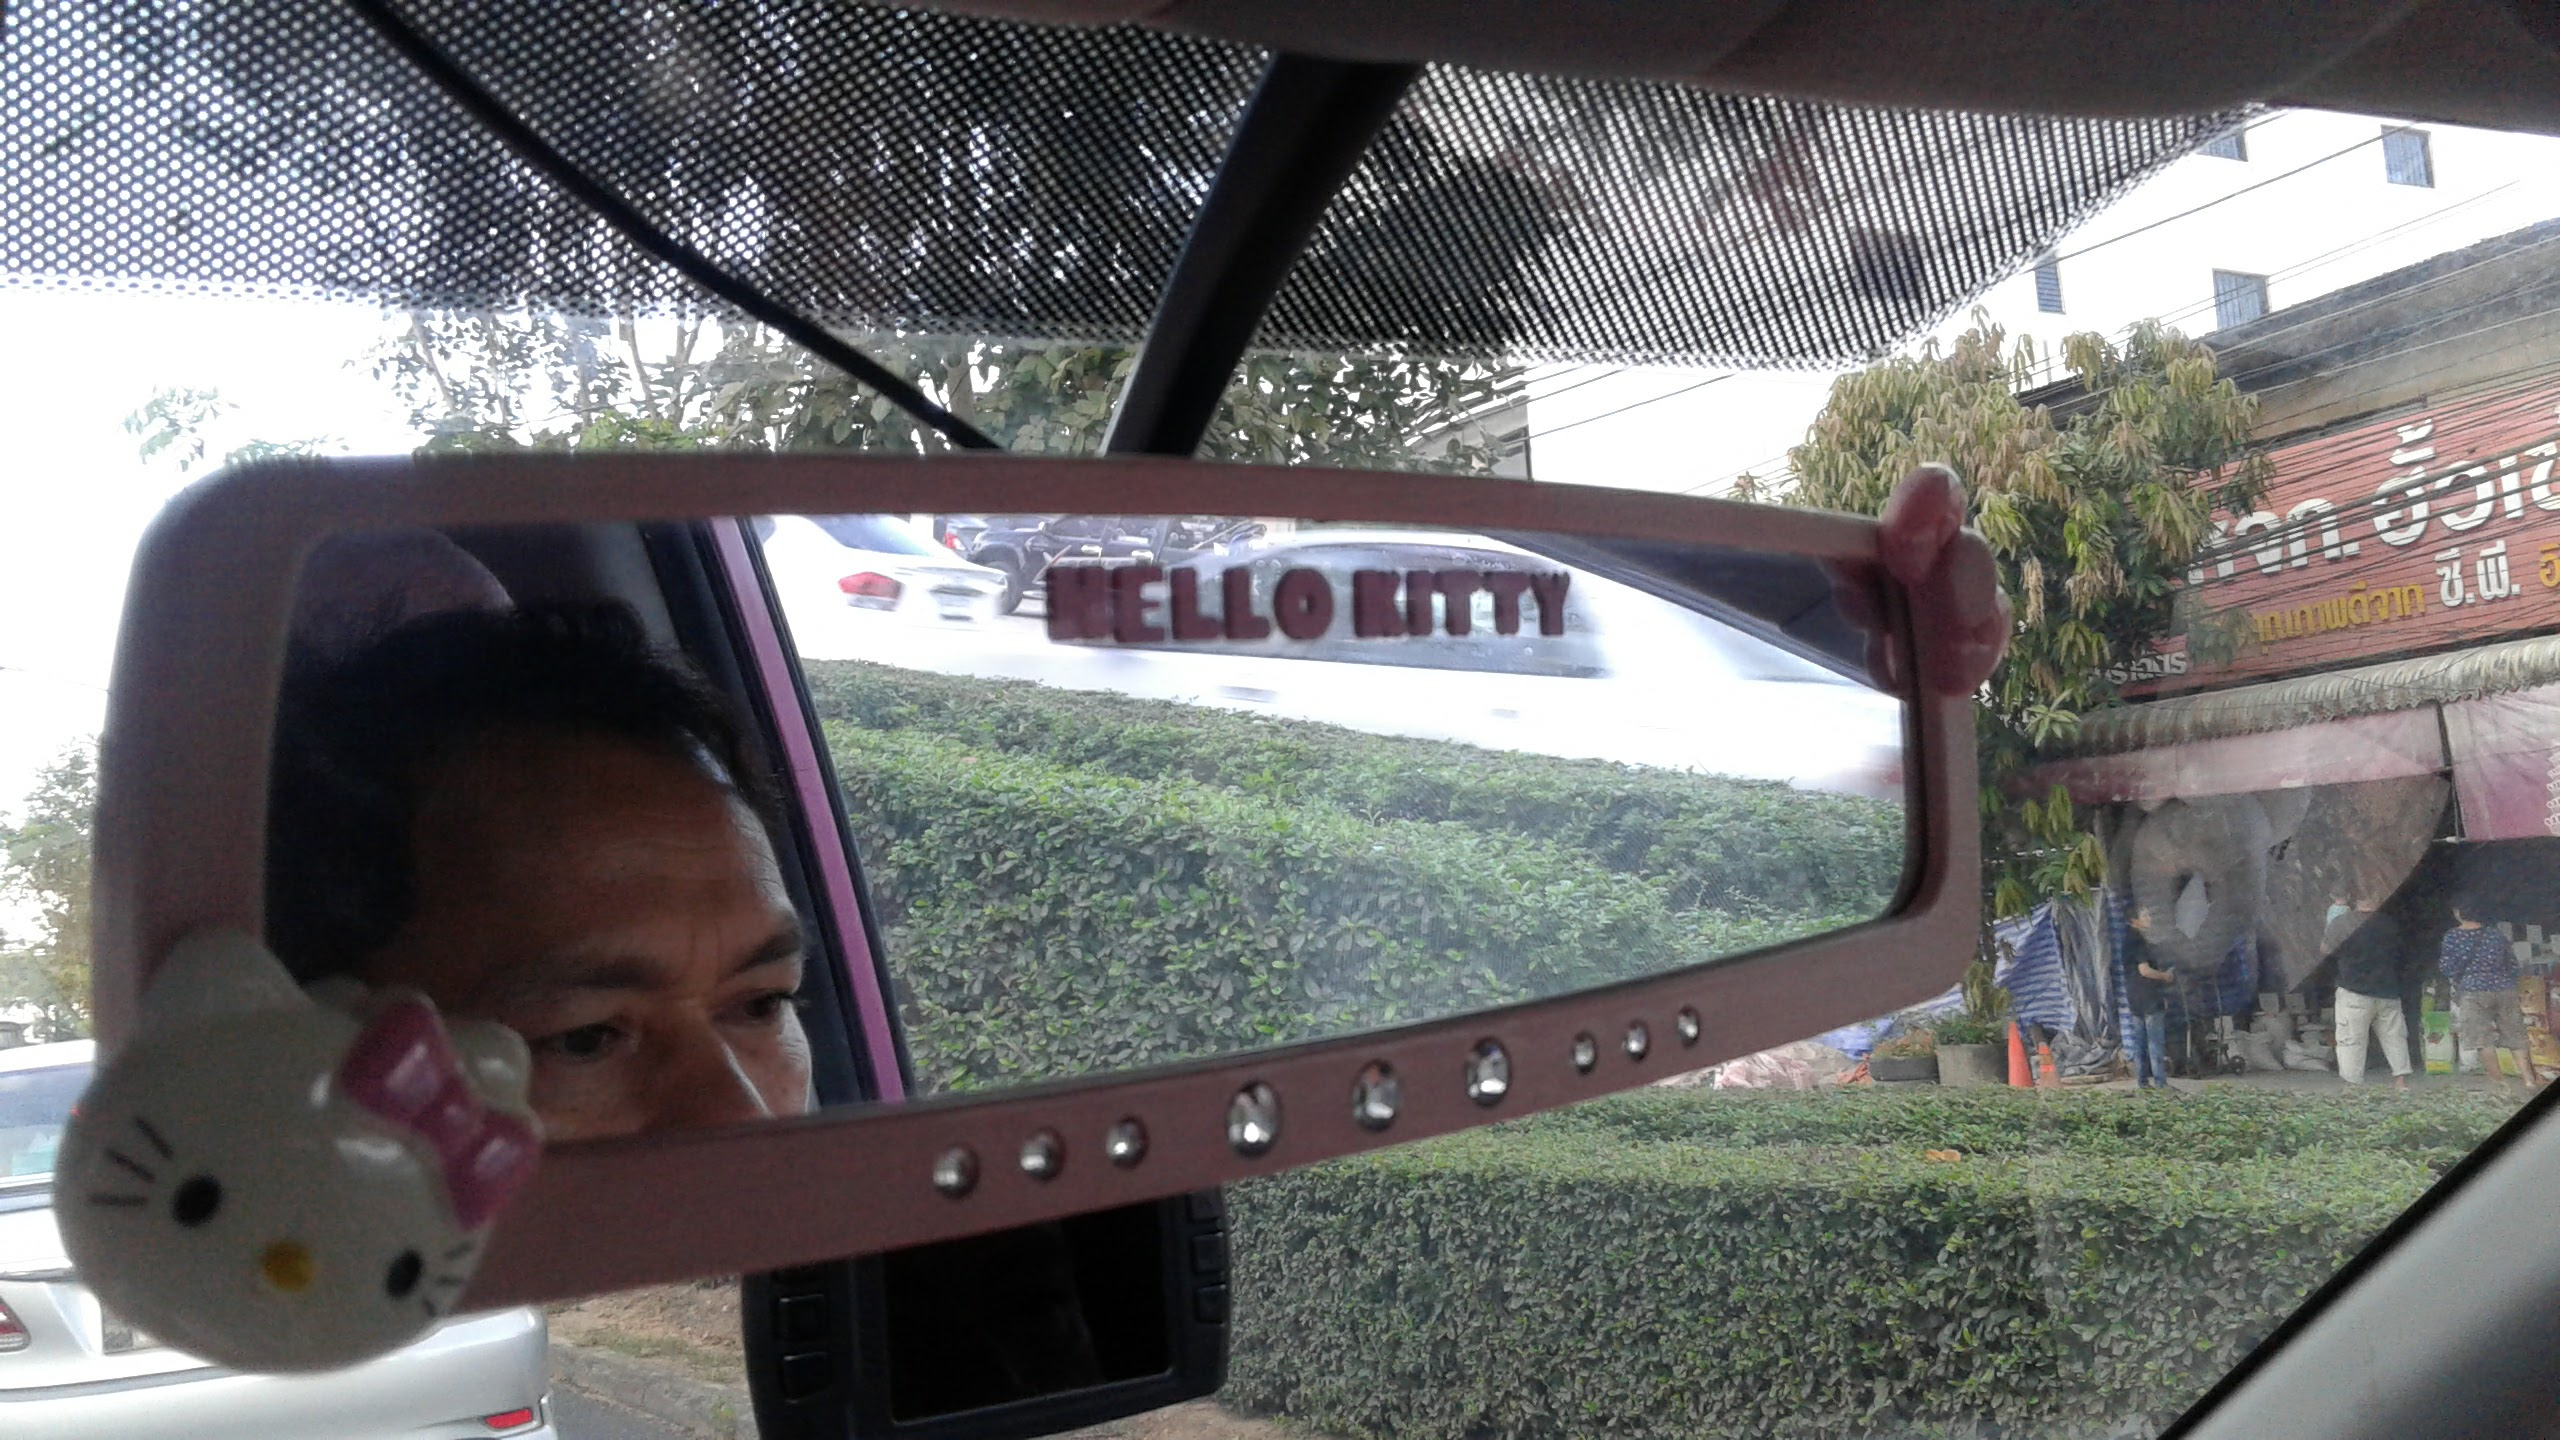 Hello Kitty rear view mirror.